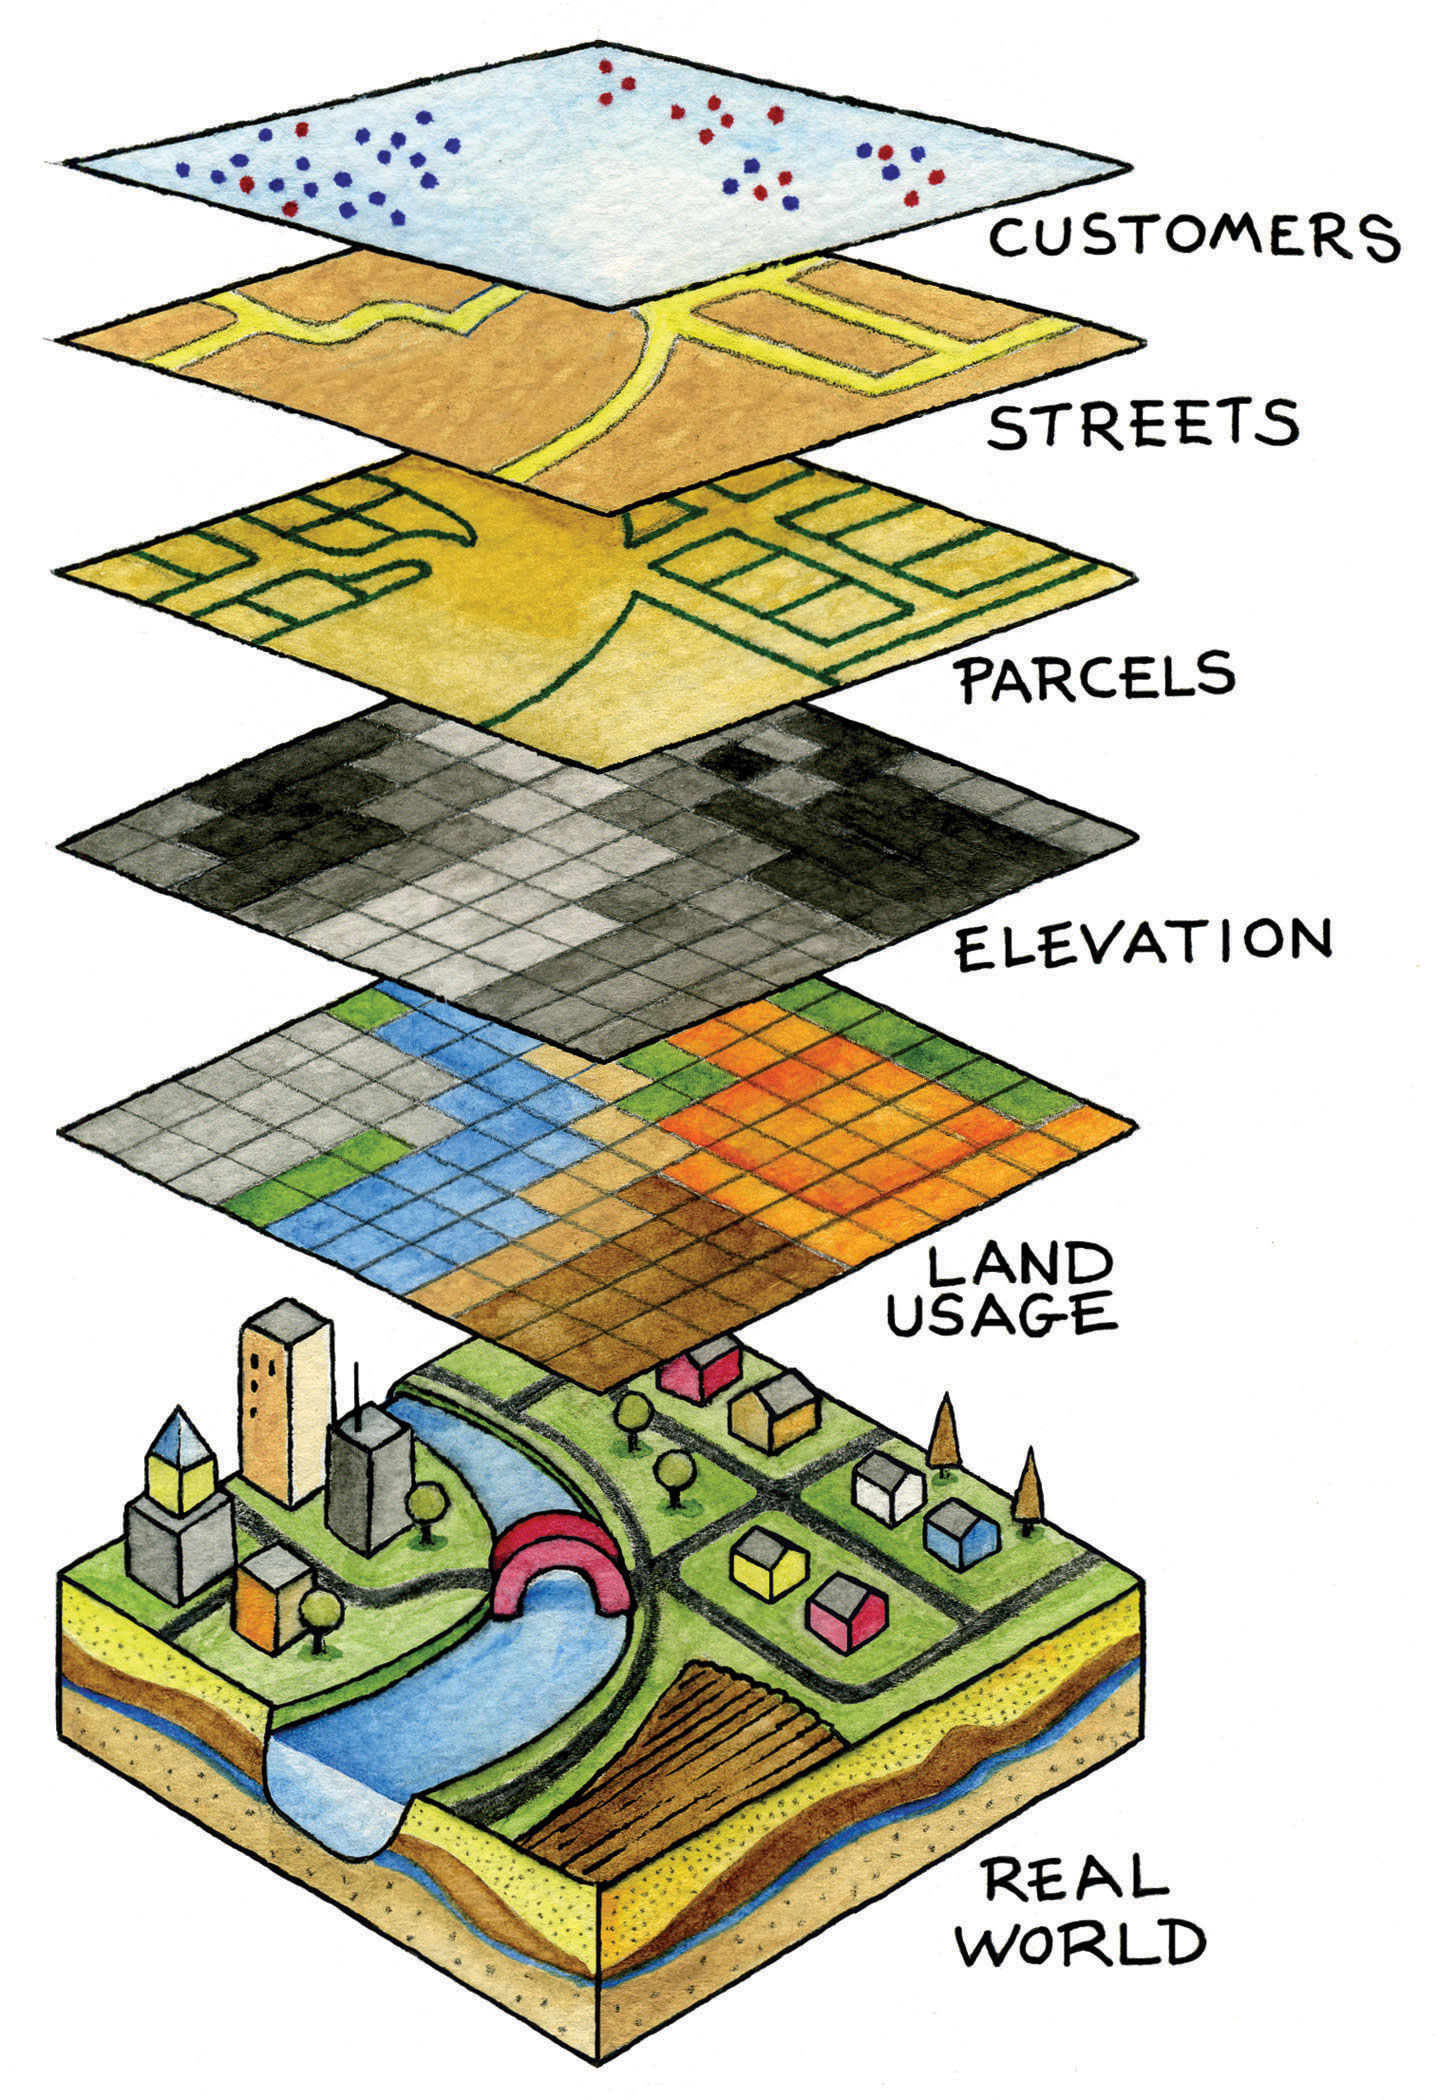 10 Geographical Information Systems Data Layers Images